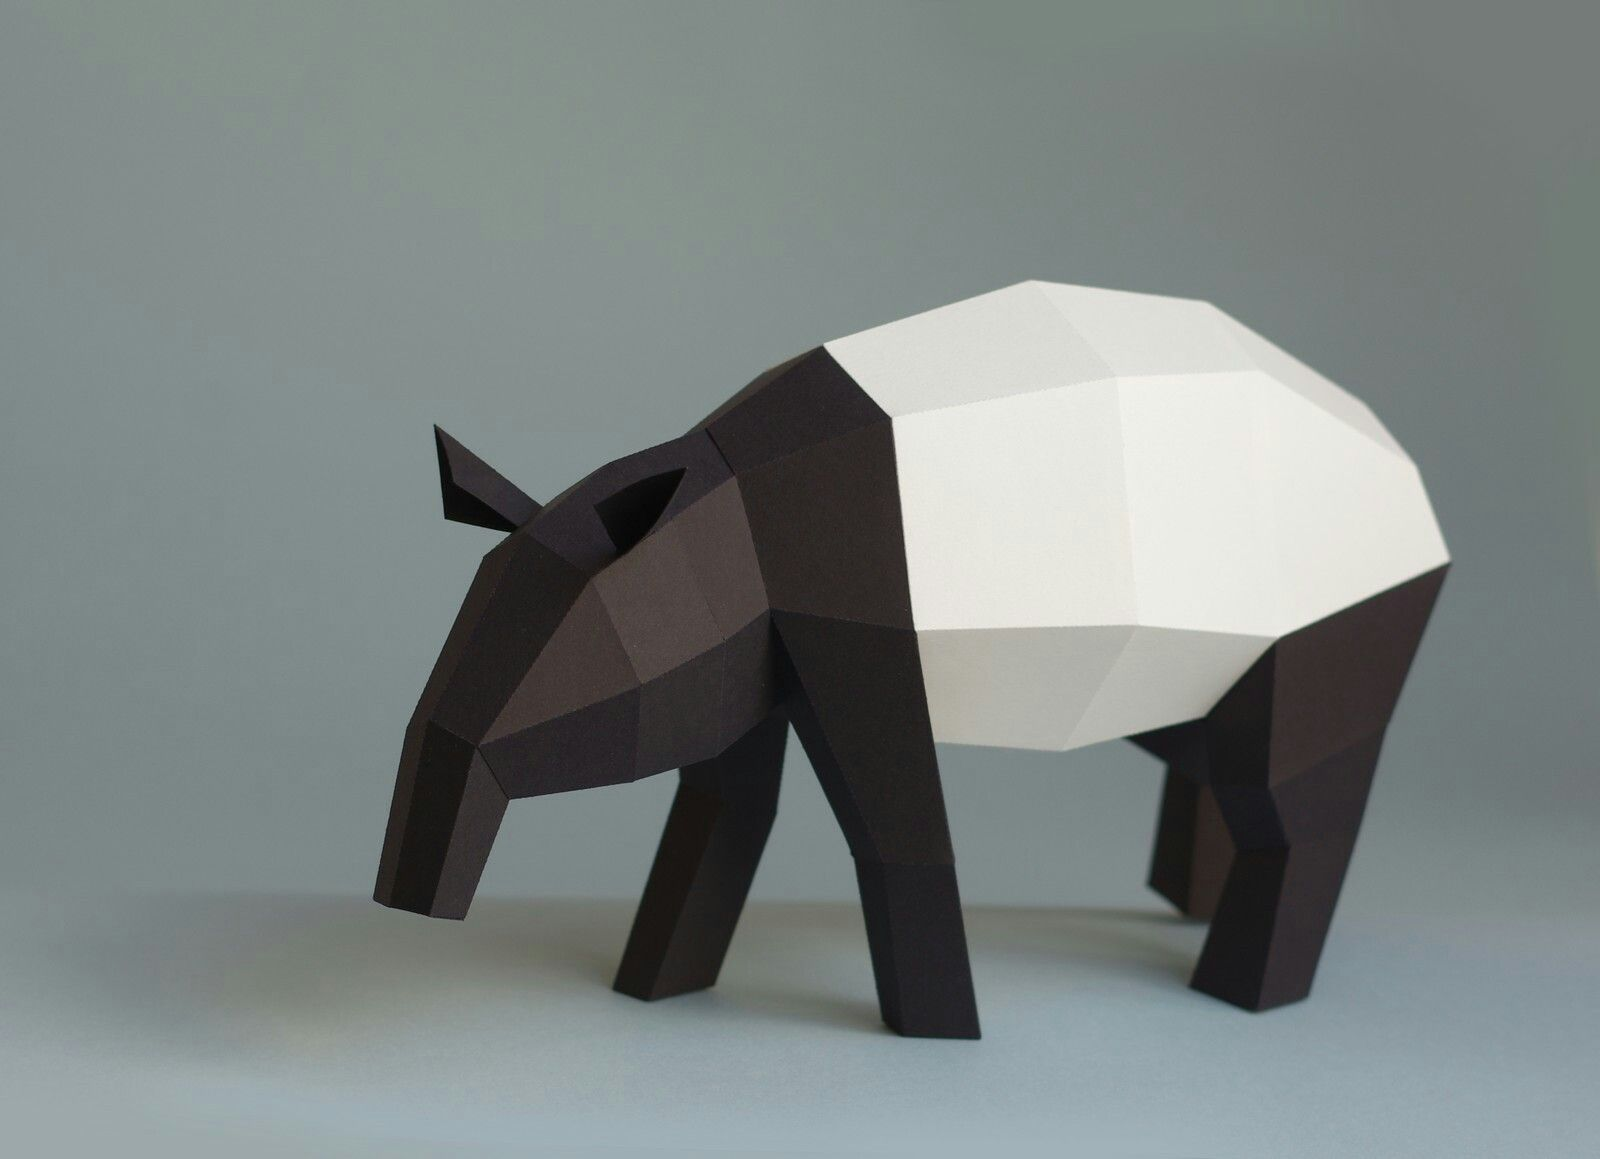 Original paperwolf tapir paperwolf pinterest diy artwork paper trophy and paper craft creations by paperwolf the most realistic paper craft animal diy artwork jeuxipadfo Image collections